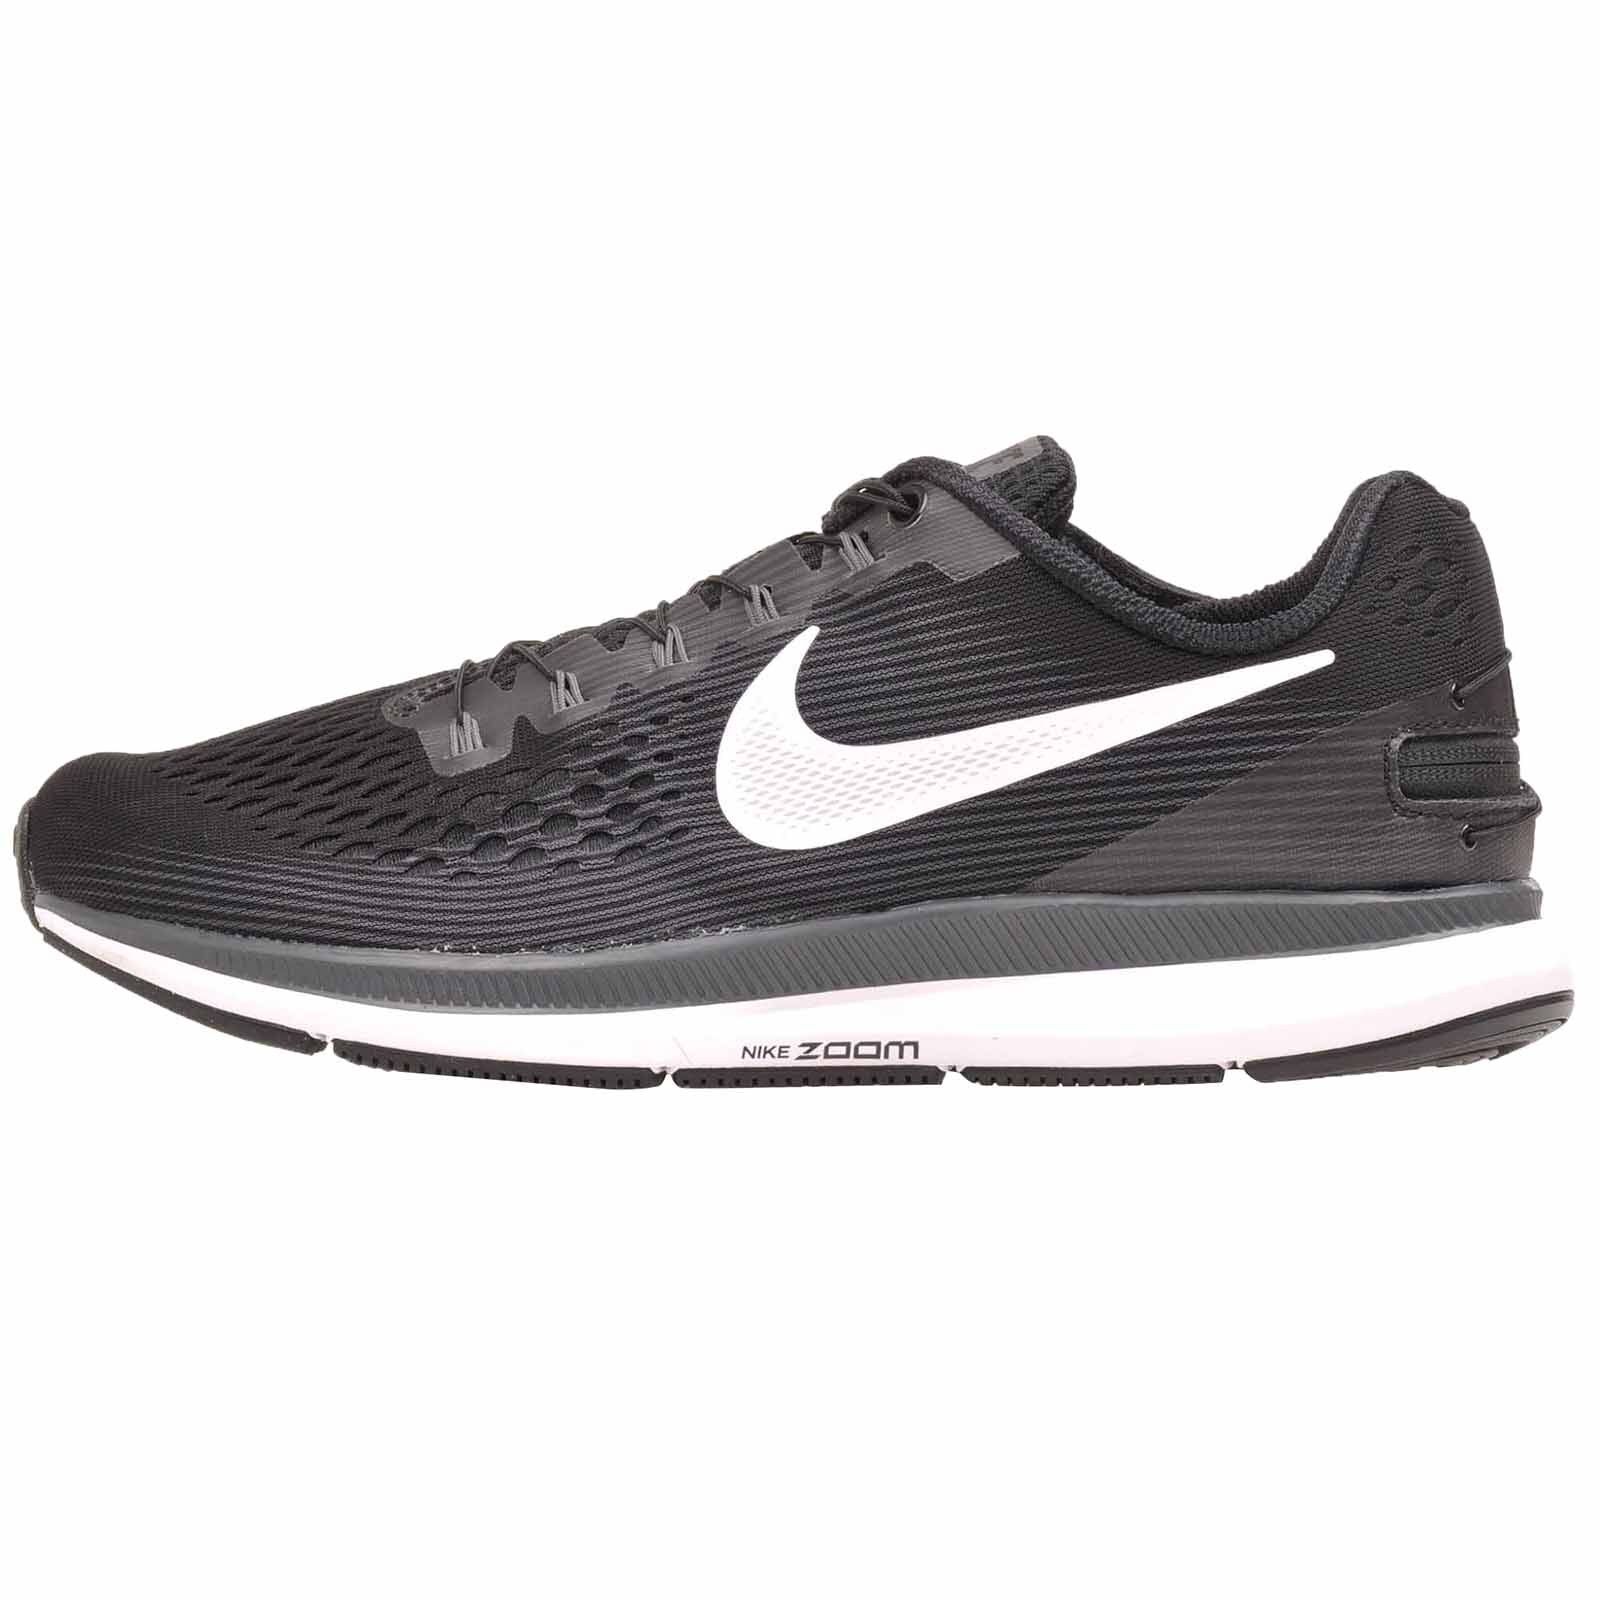 Nike Zoom Pegasus 34 Flyease Running Mens Shoes Black Black Black White Grey 904678-001 4280e6